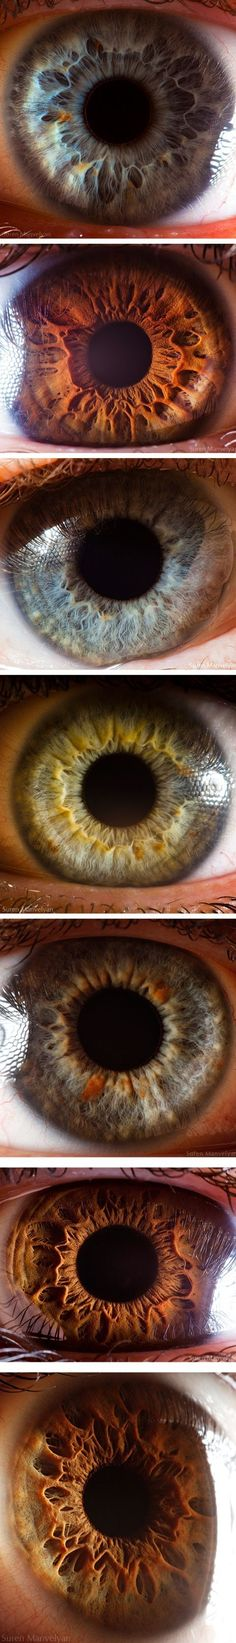 """Eyes"" Photographer Suren Manvelyan's close up images of human and animal eyes. http://www.surenmanvelyan.com/ #eyedrawings"